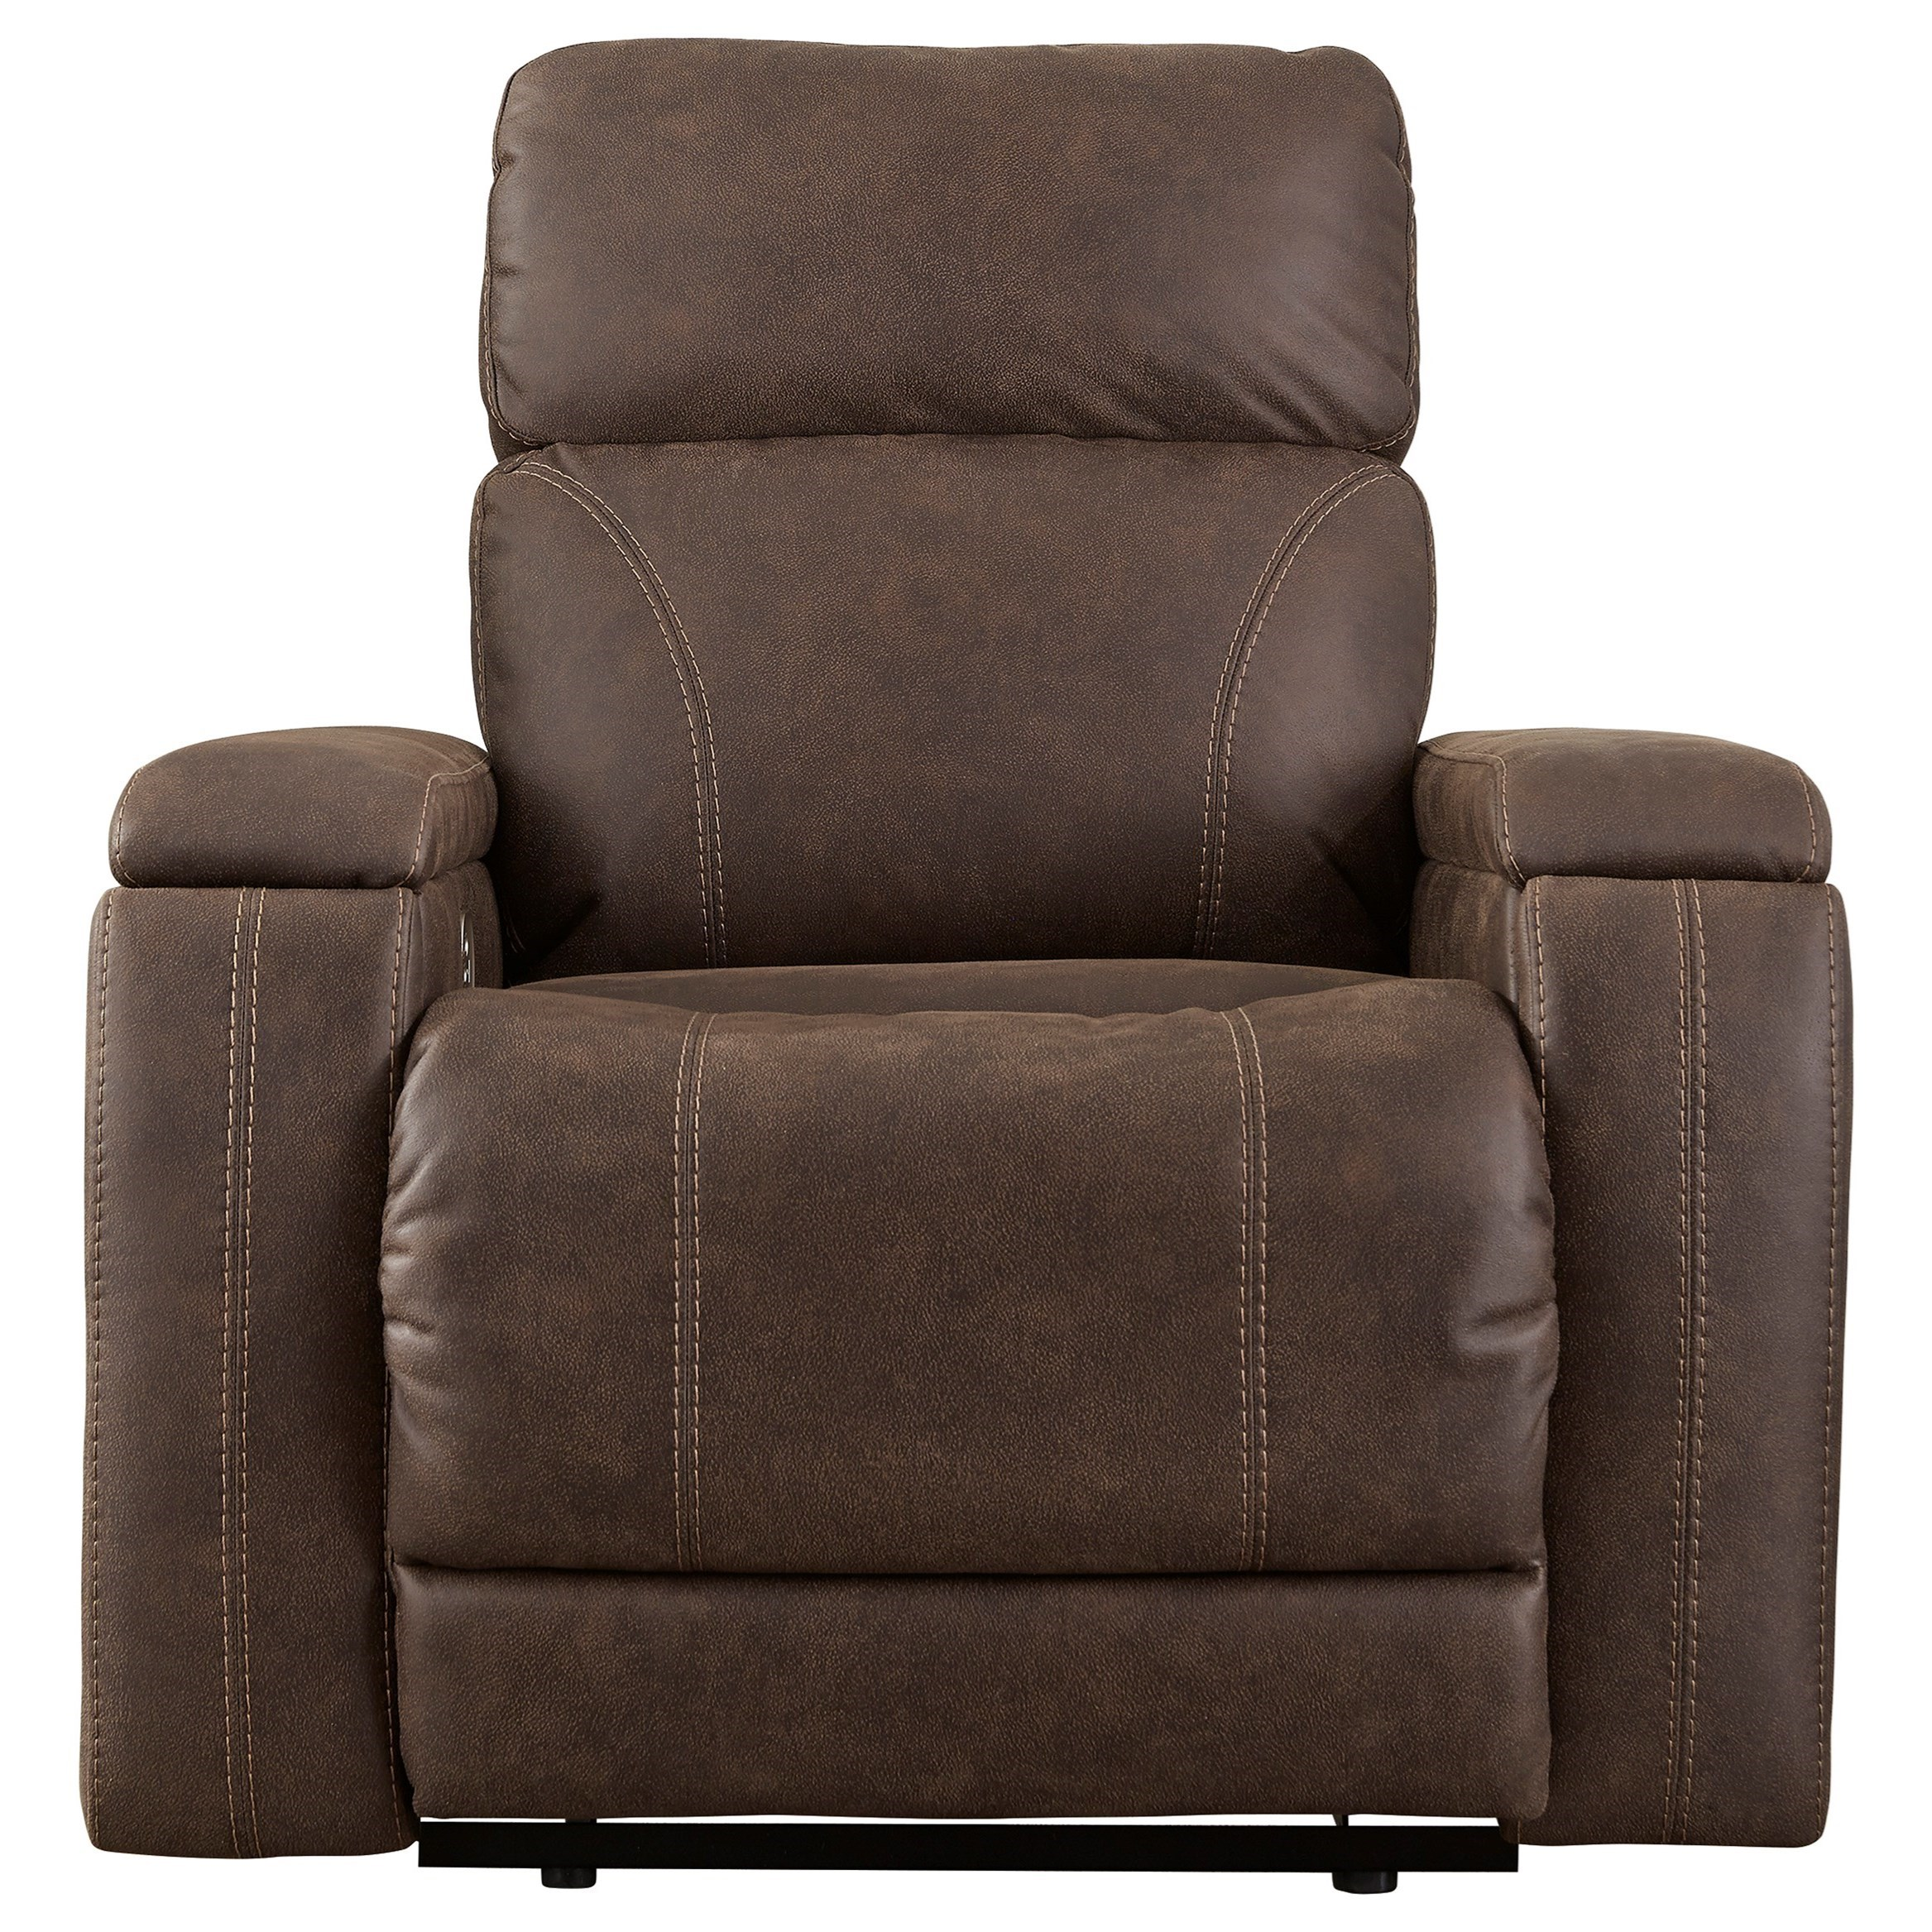 Rowlett Power Recliner with Adjustable Headrest by Signature Design by Ashley at Beck's Furniture